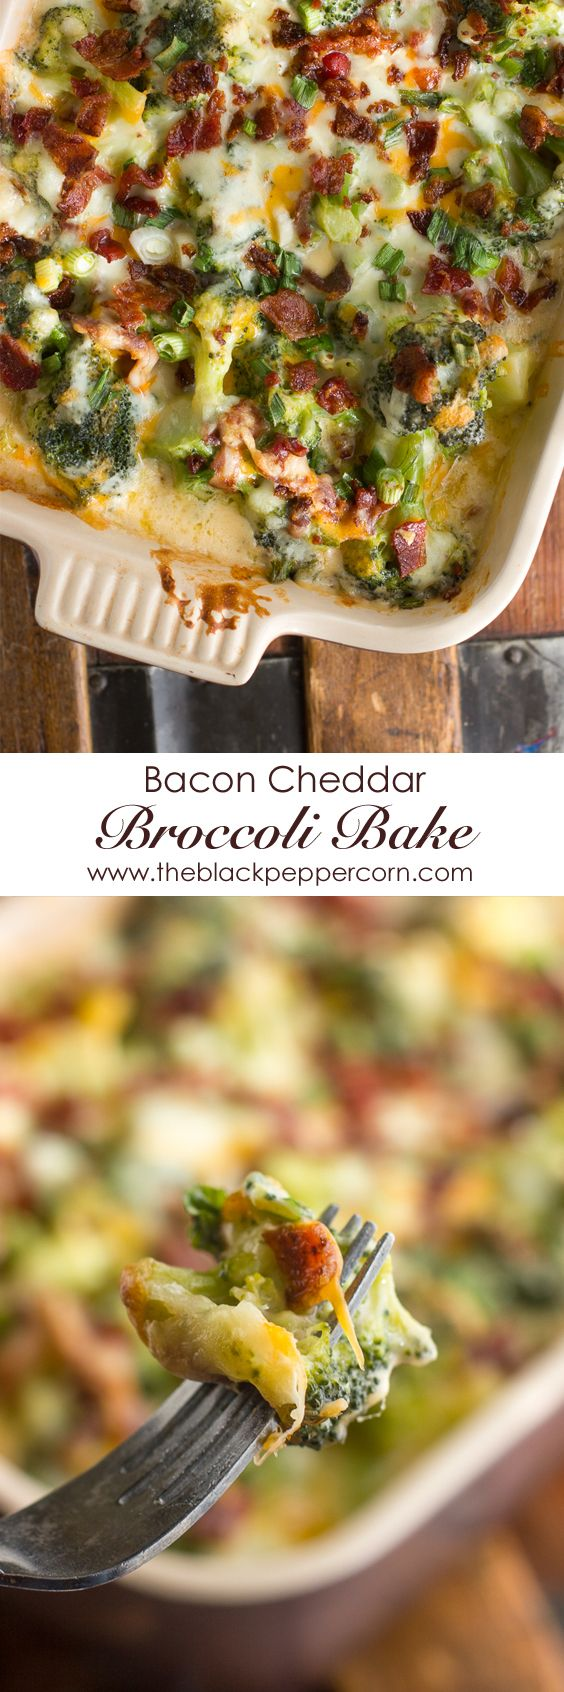 Bacon+Cheddar+Broccoli+Bake